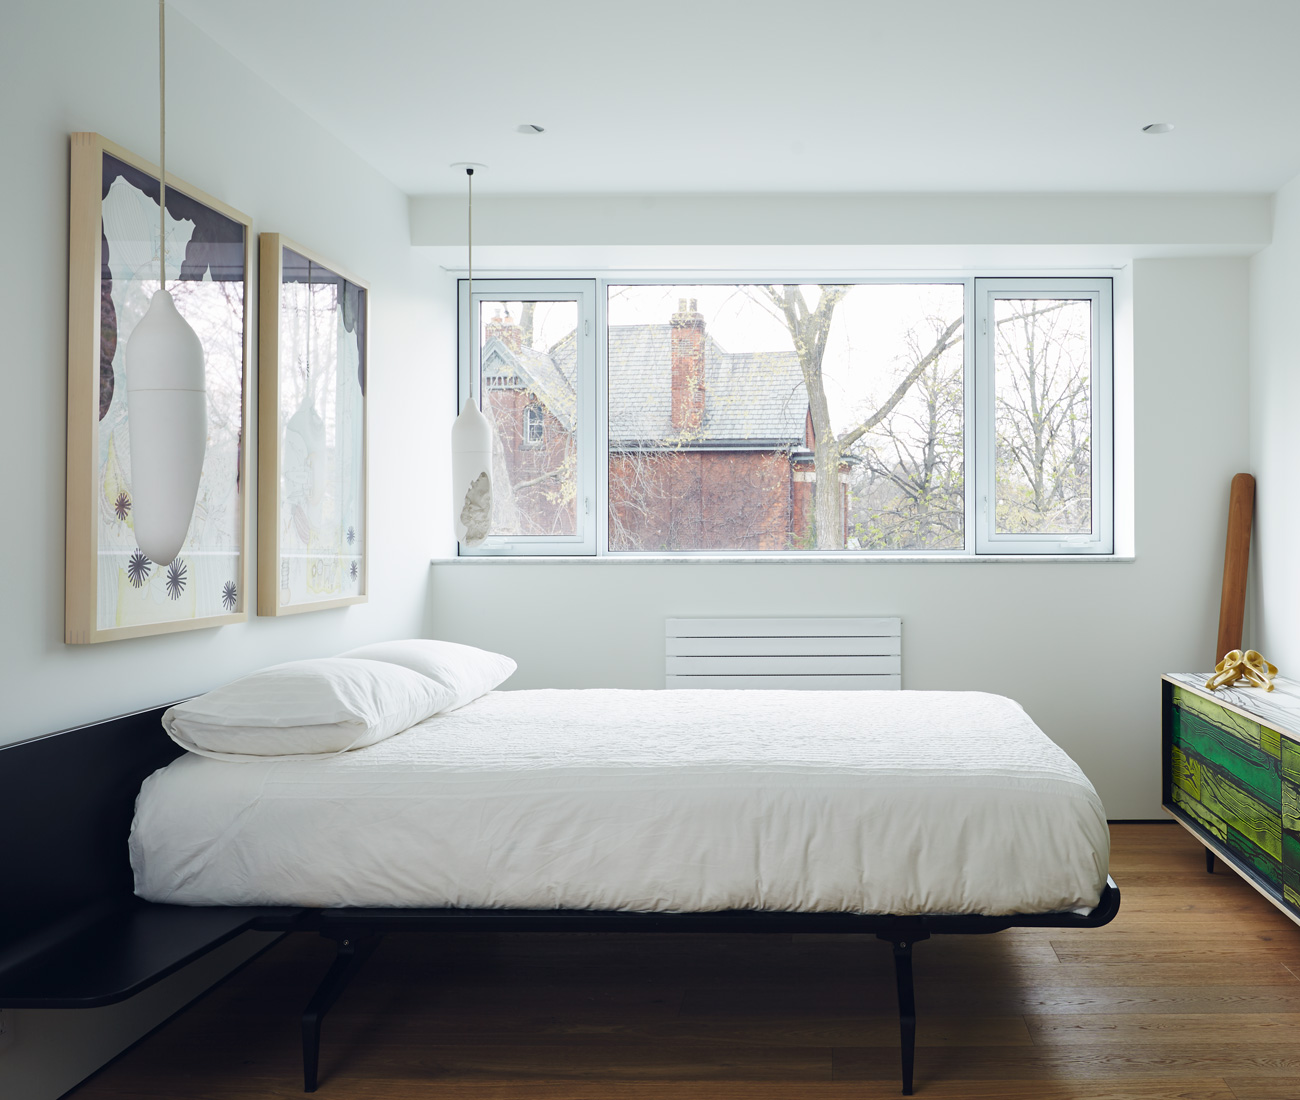 In the master bedroom: bed by Legnoletto; cabinet by Established & Sons; photo by Timothy Saccenti. Photo by Michael Graydon.